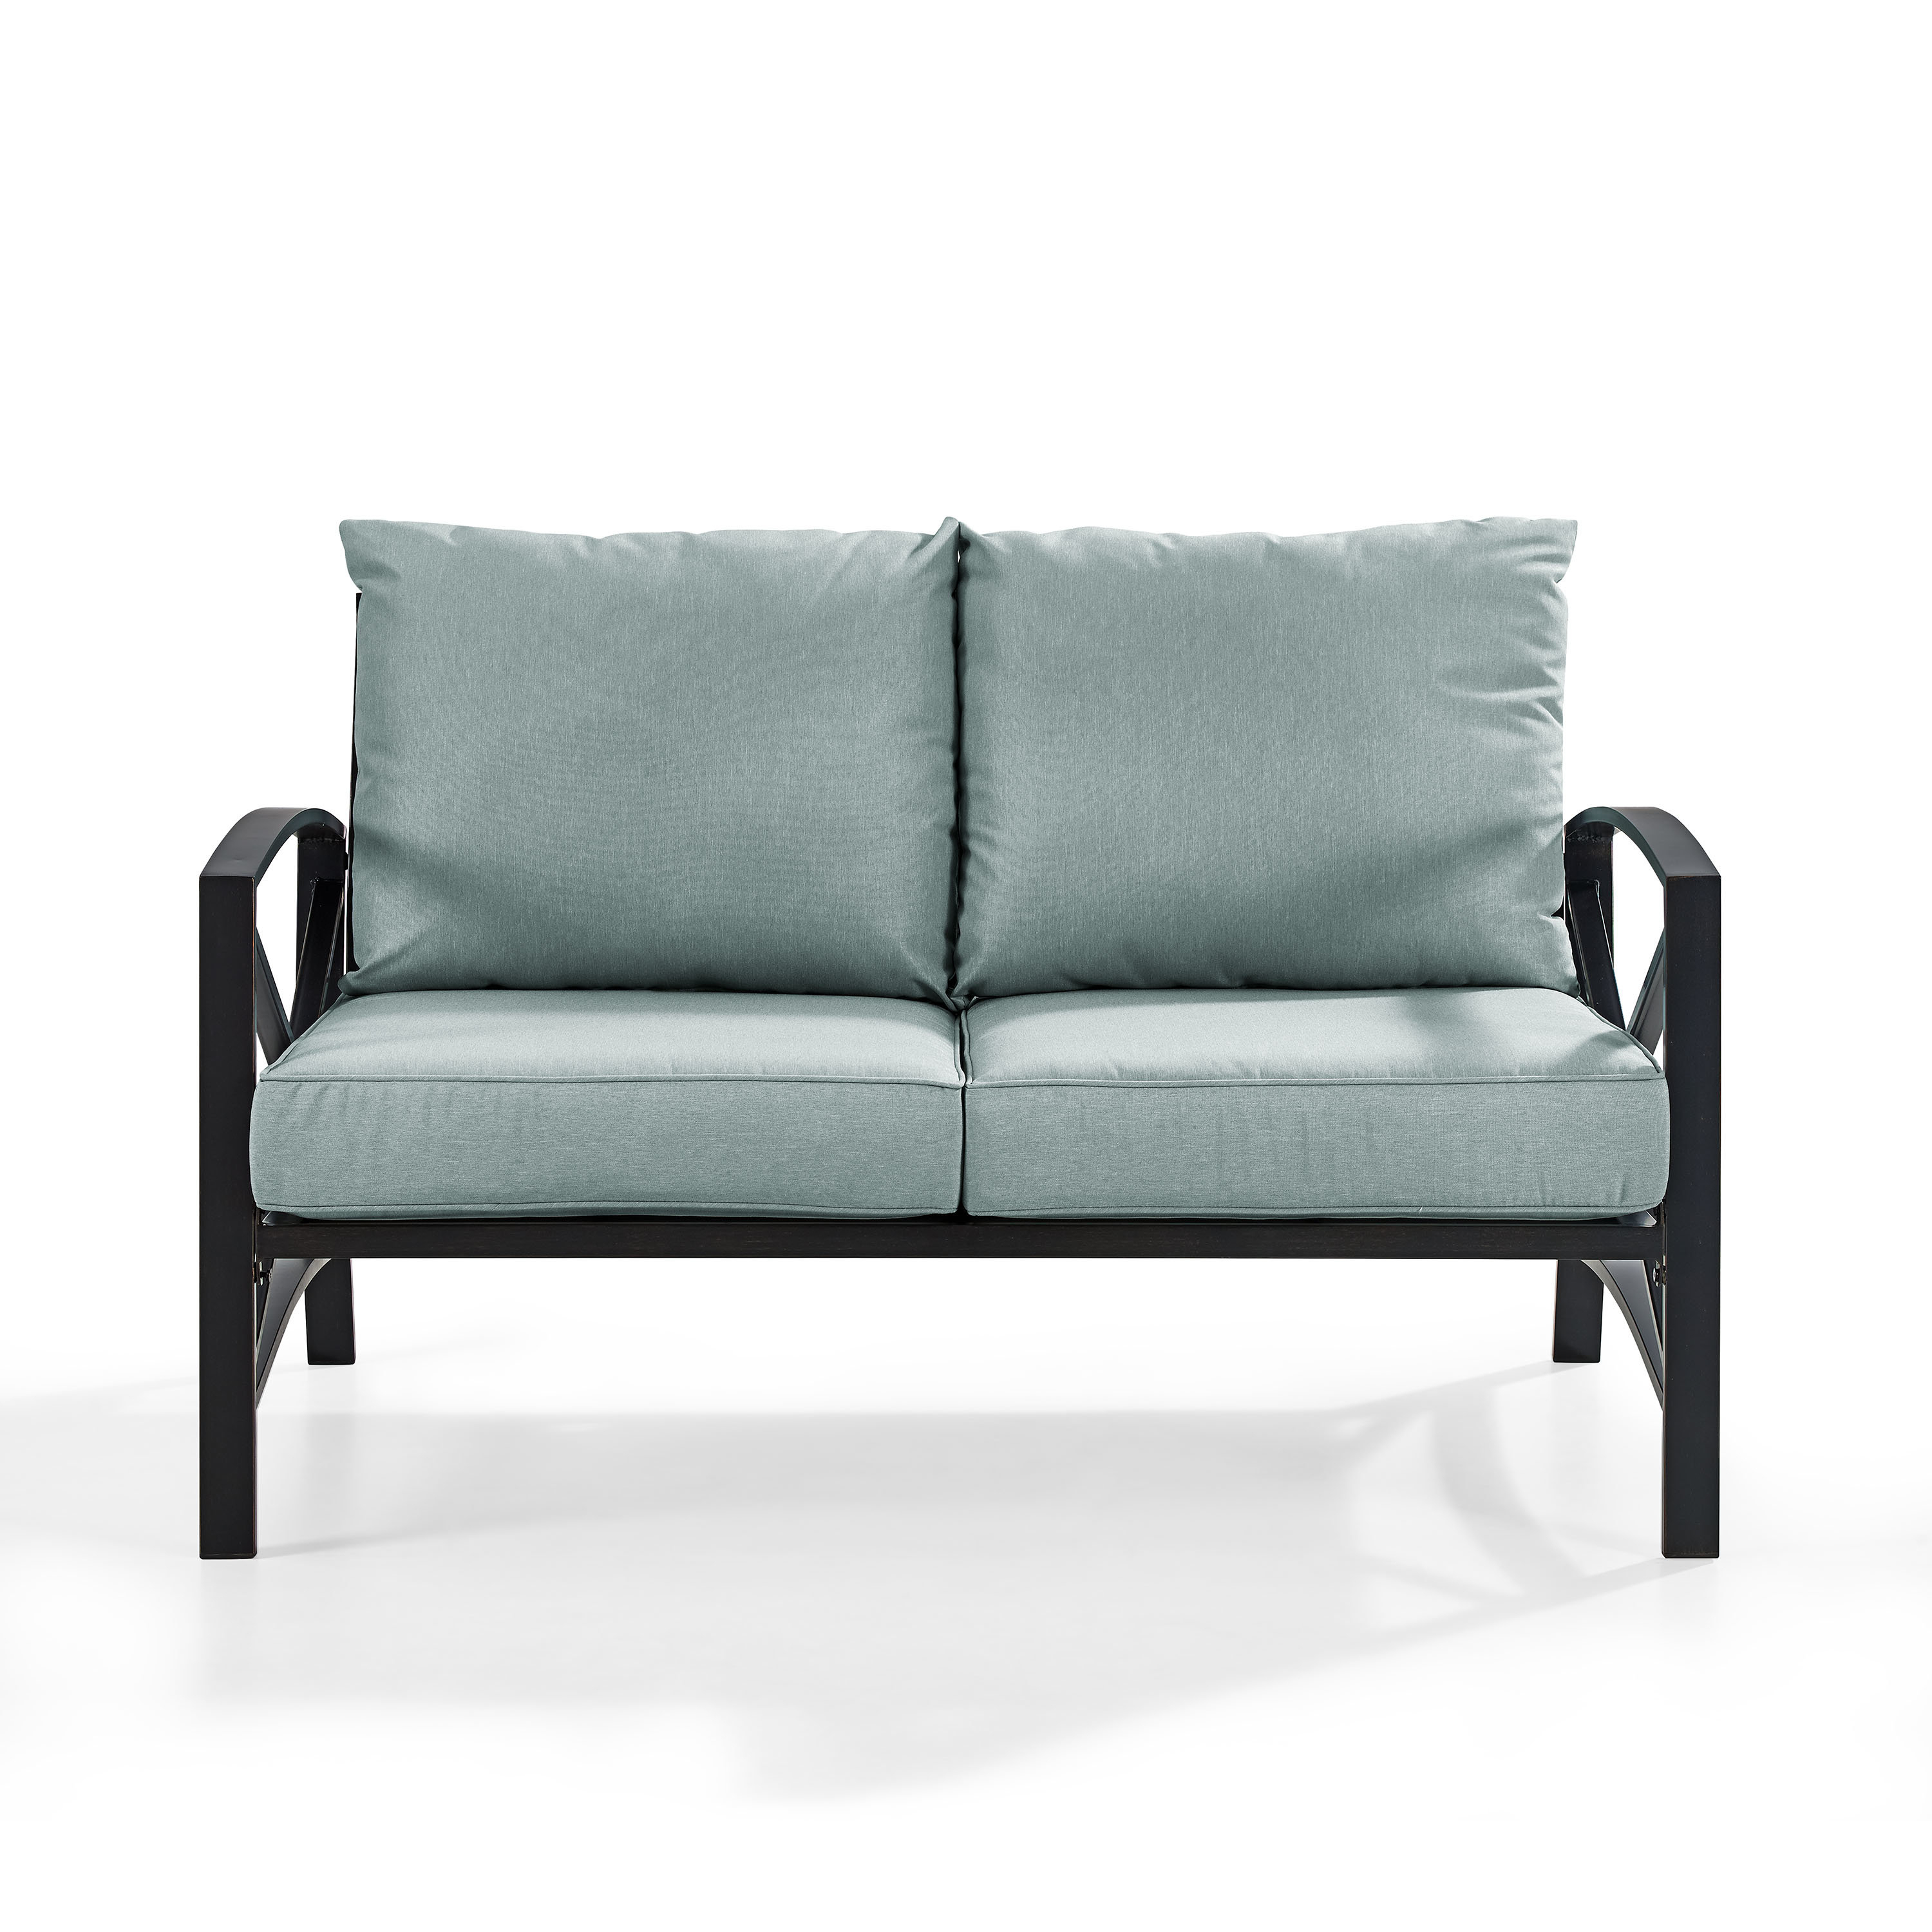 Allmodern Pertaining To Newest Sylvania Outdoor Loveseats (View 3 of 20)